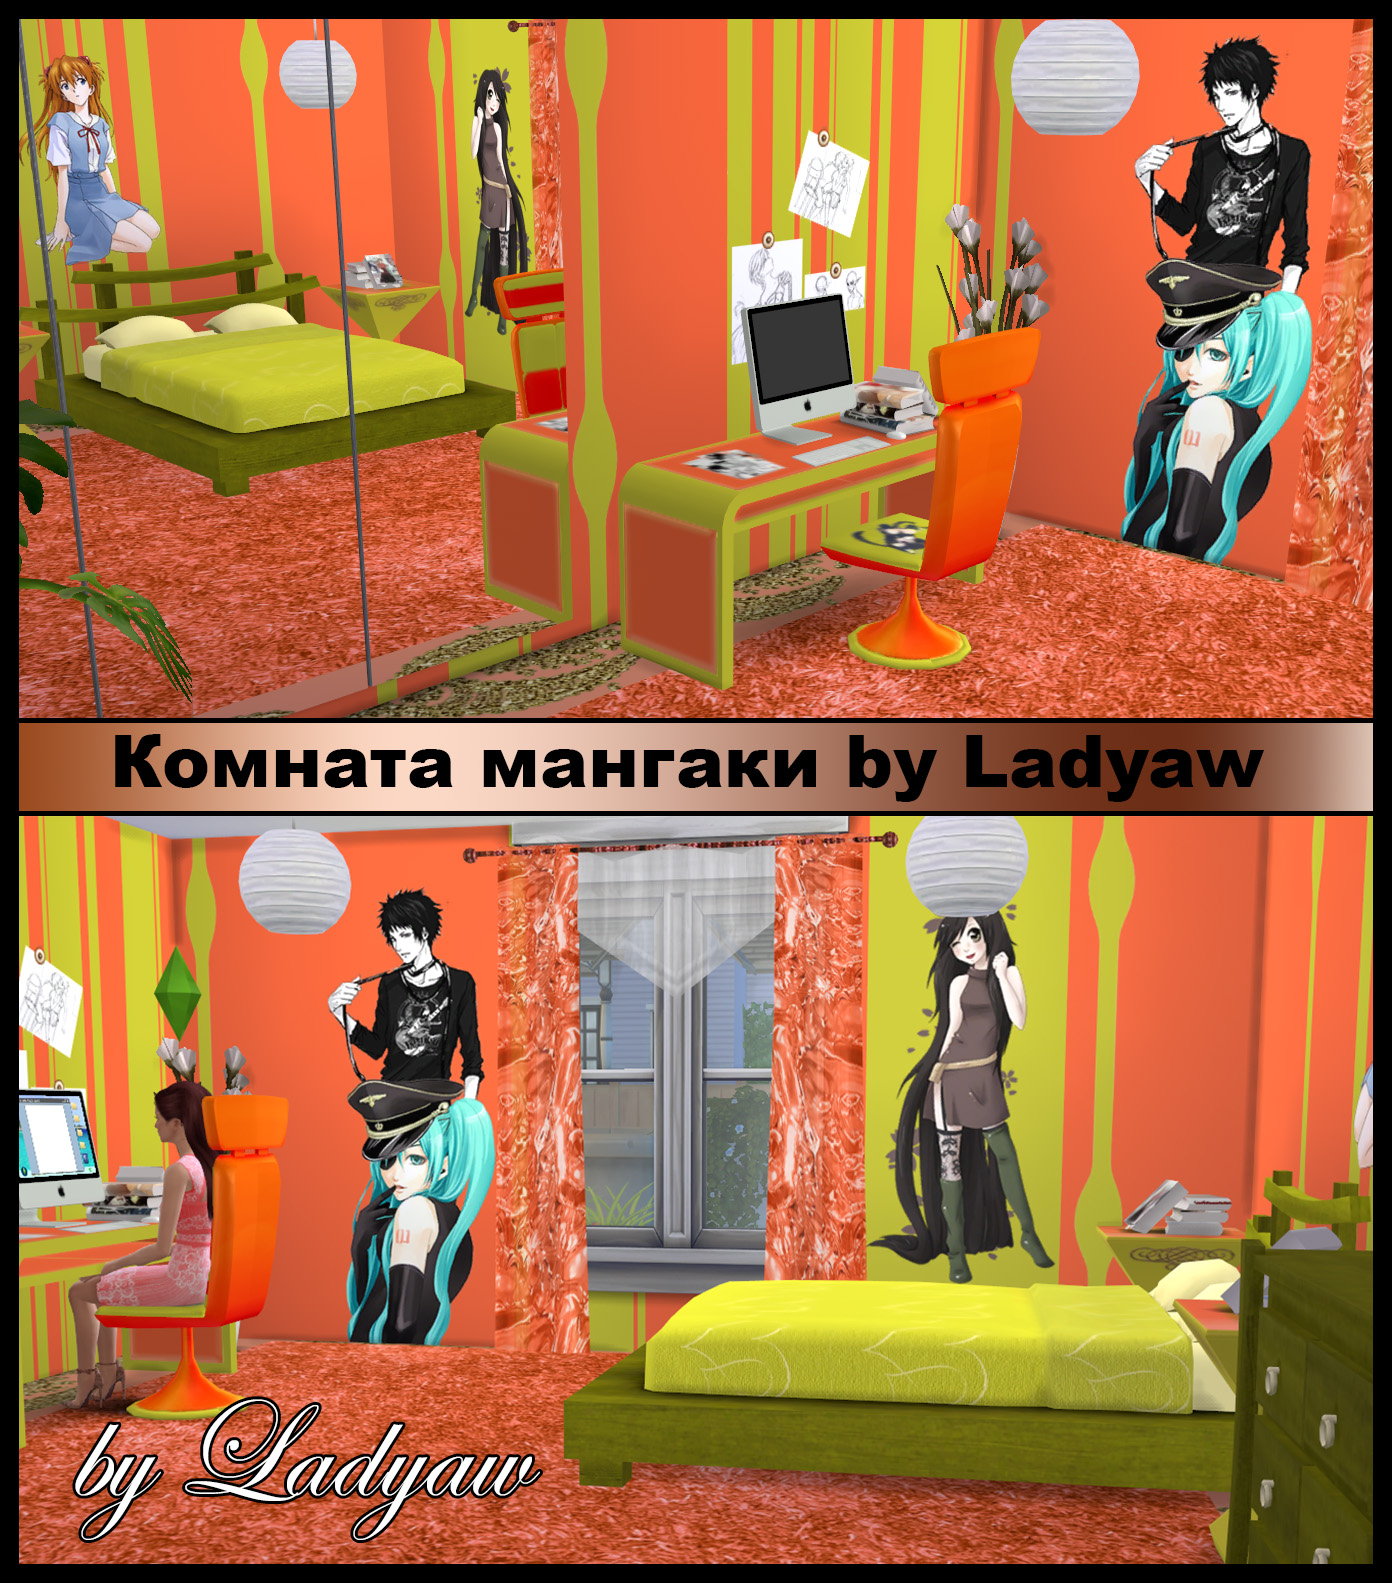 Комната мангаки by Ladyaw